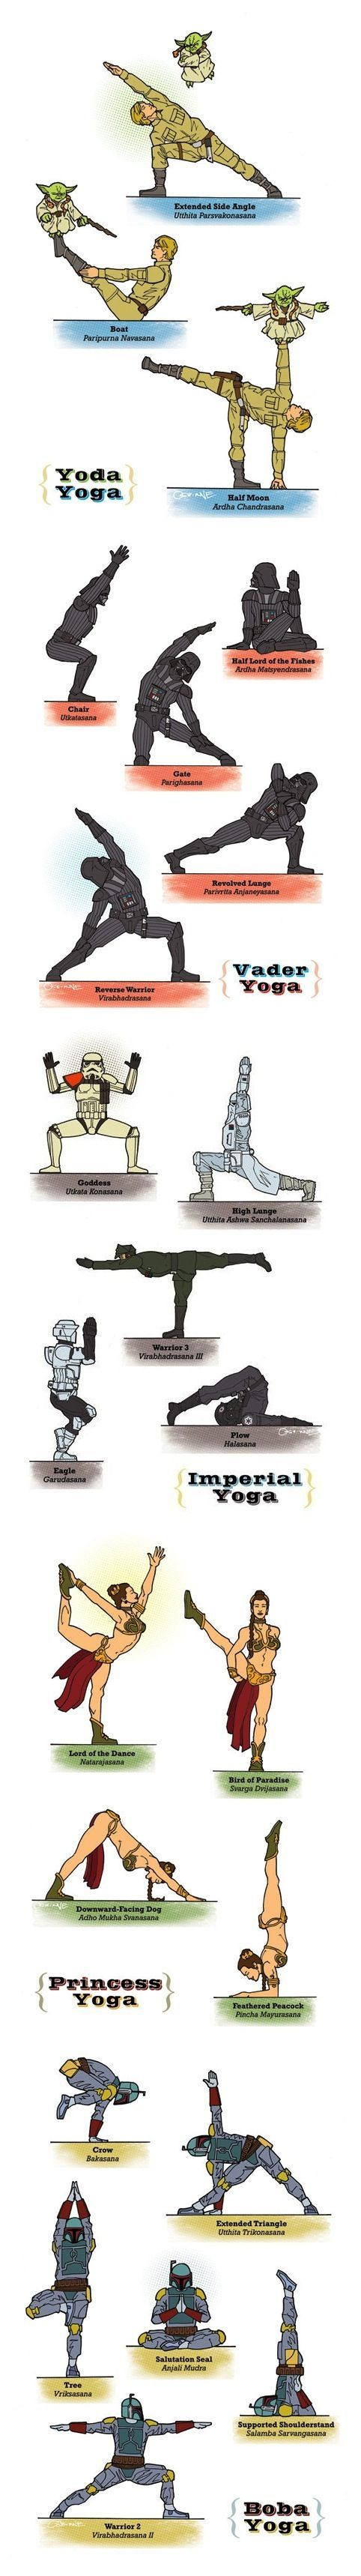 Star Wars yoga. #iwouldtrythis